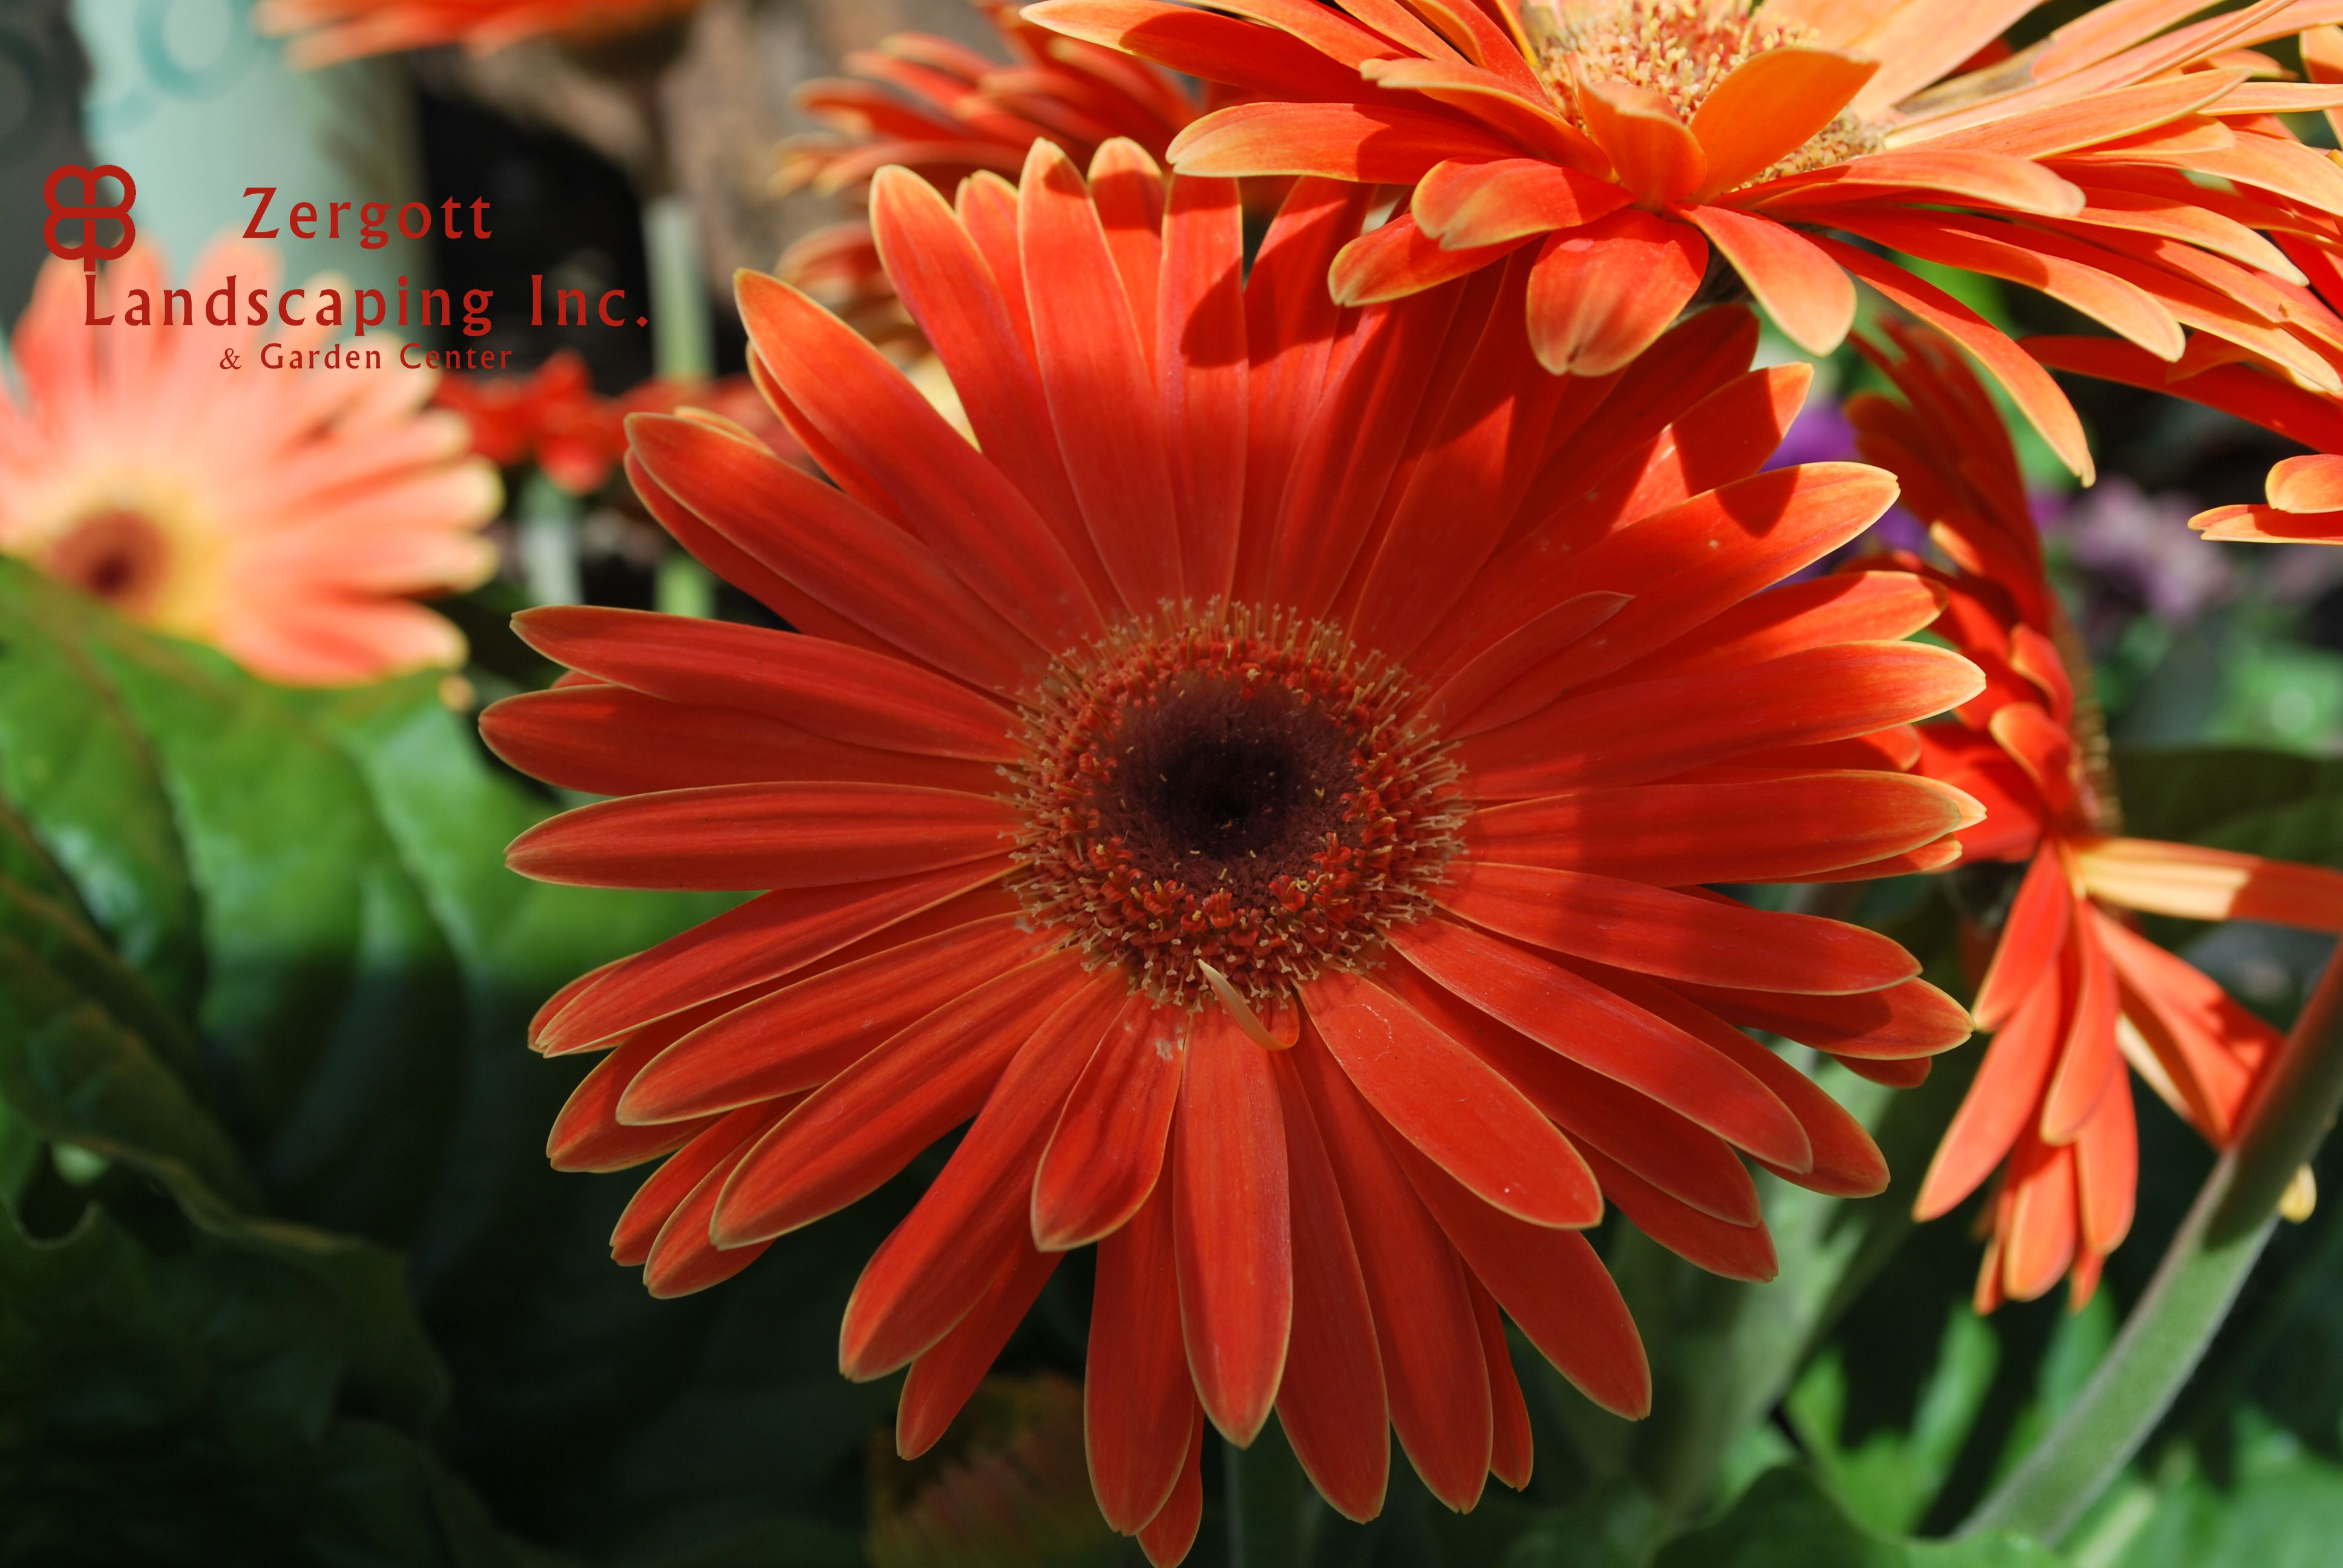 This type of plant is called a gerbera daisy types of flowers this type of plant is called a gerbera daisy izmirmasajfo